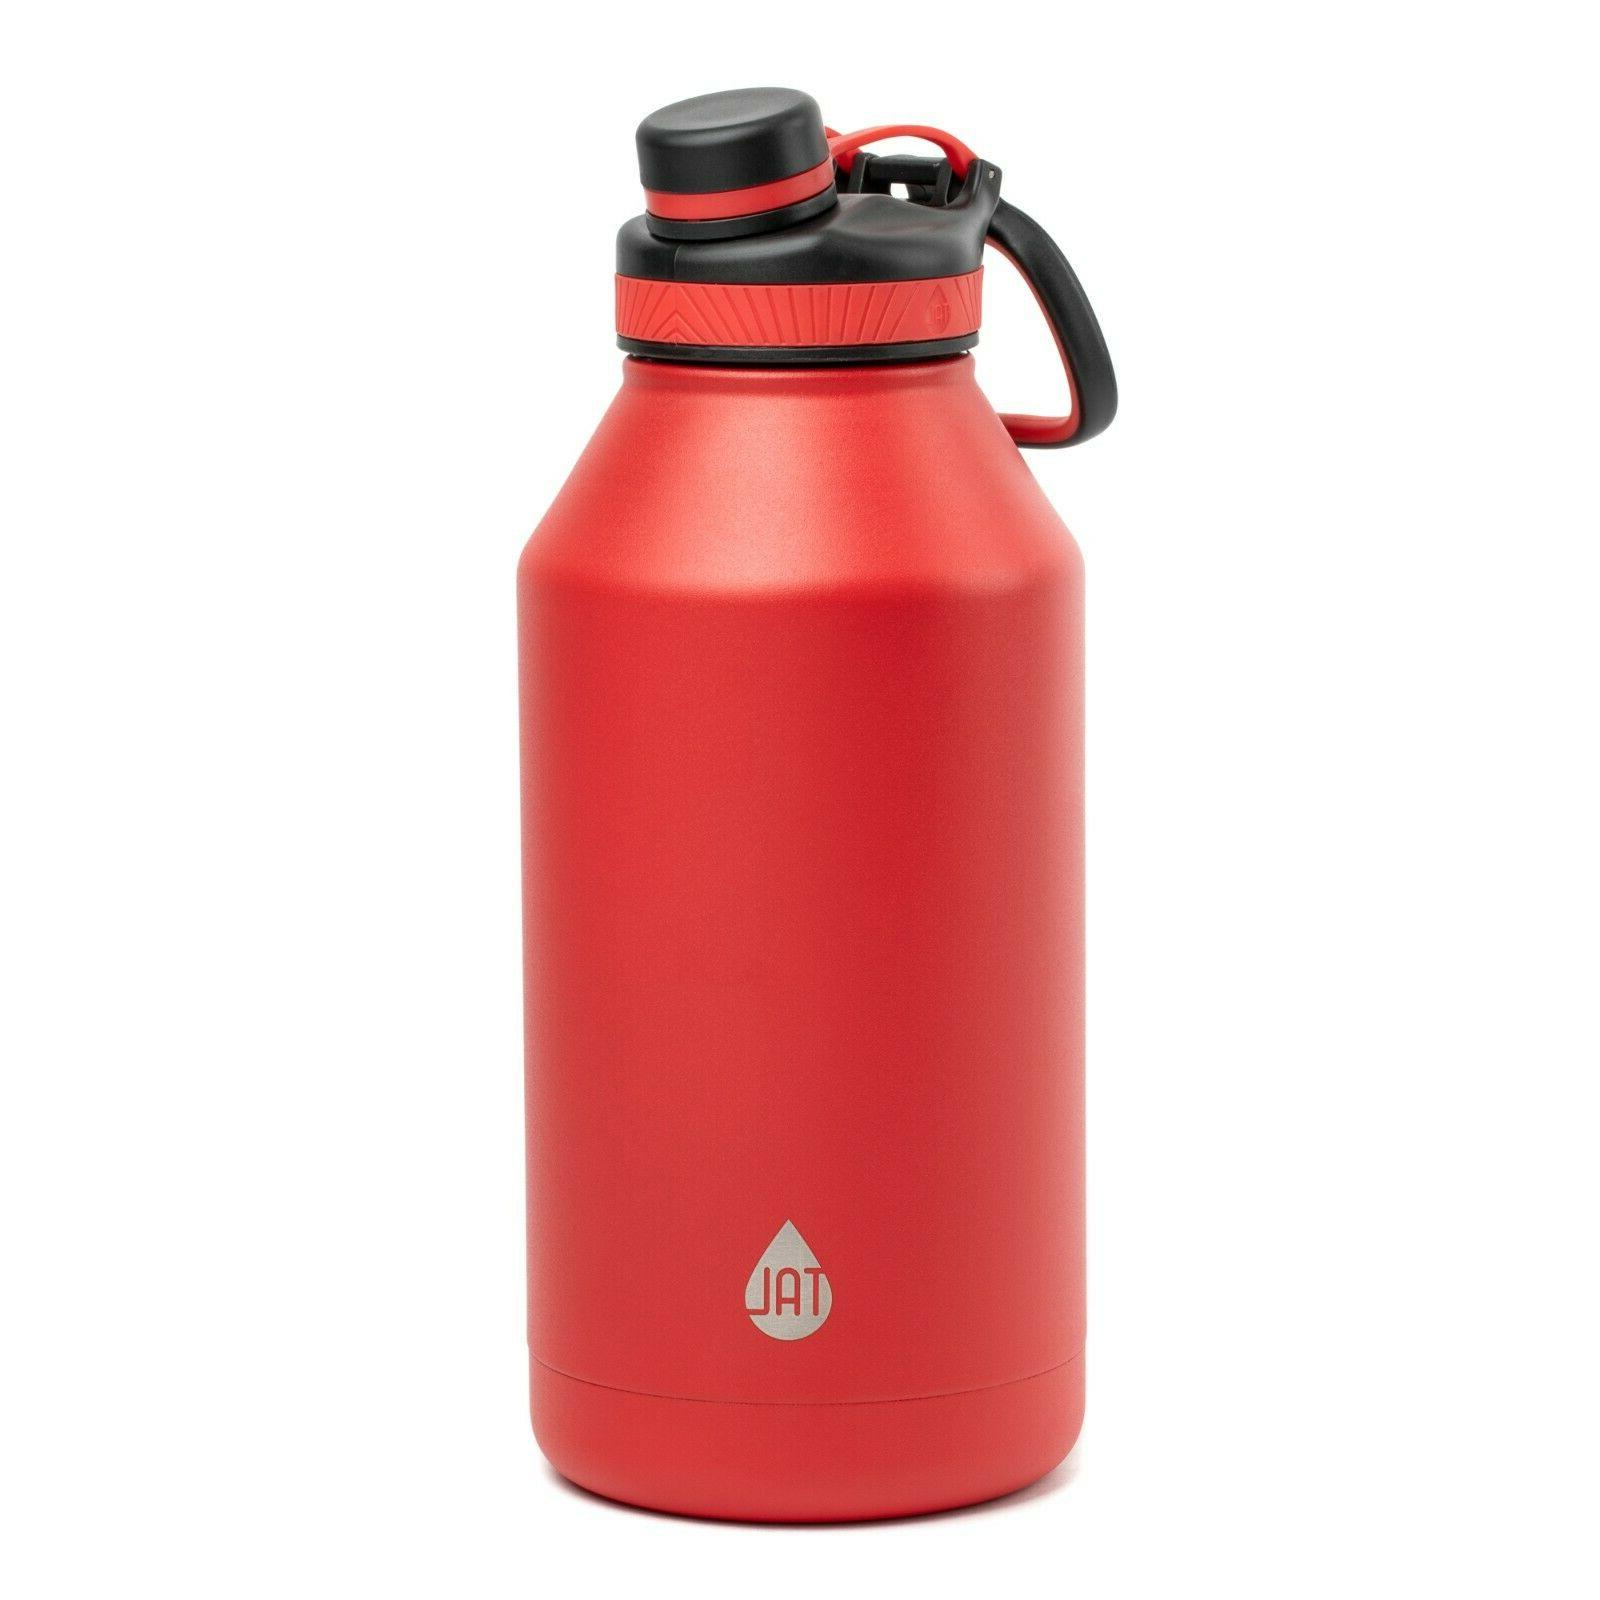 Stainless Steel Ranger Pro 64oz Double Wall Vacuum Insulated